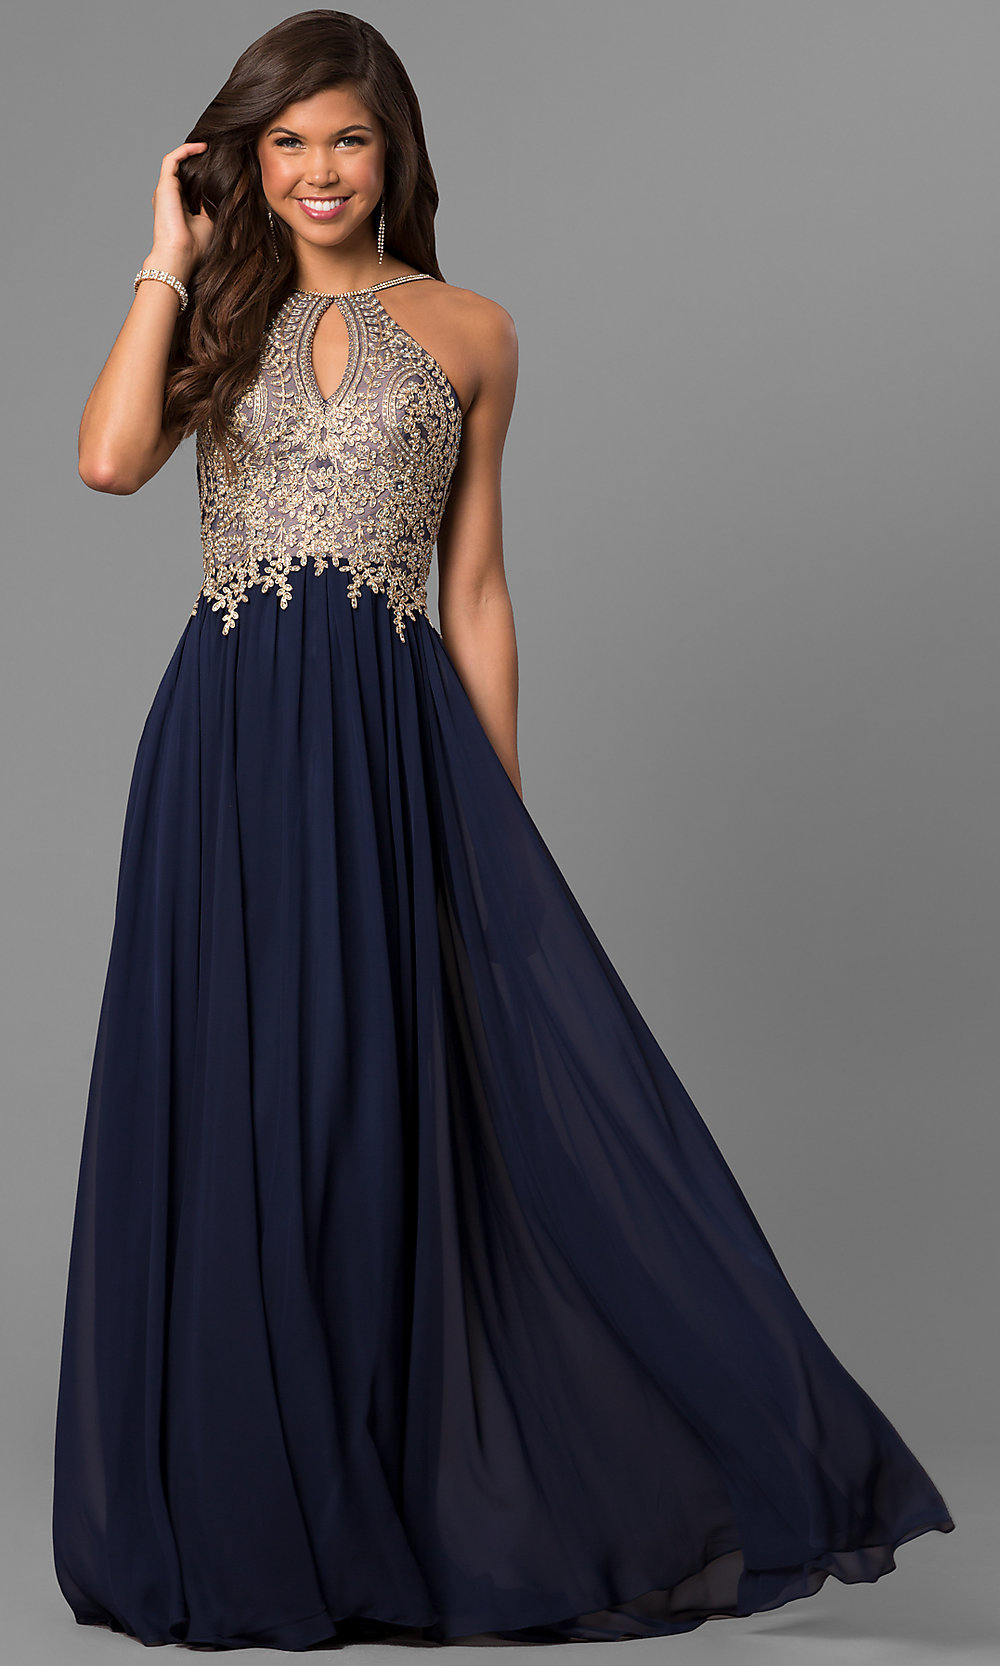 Military Ball Gowns, Long Formal Dresses